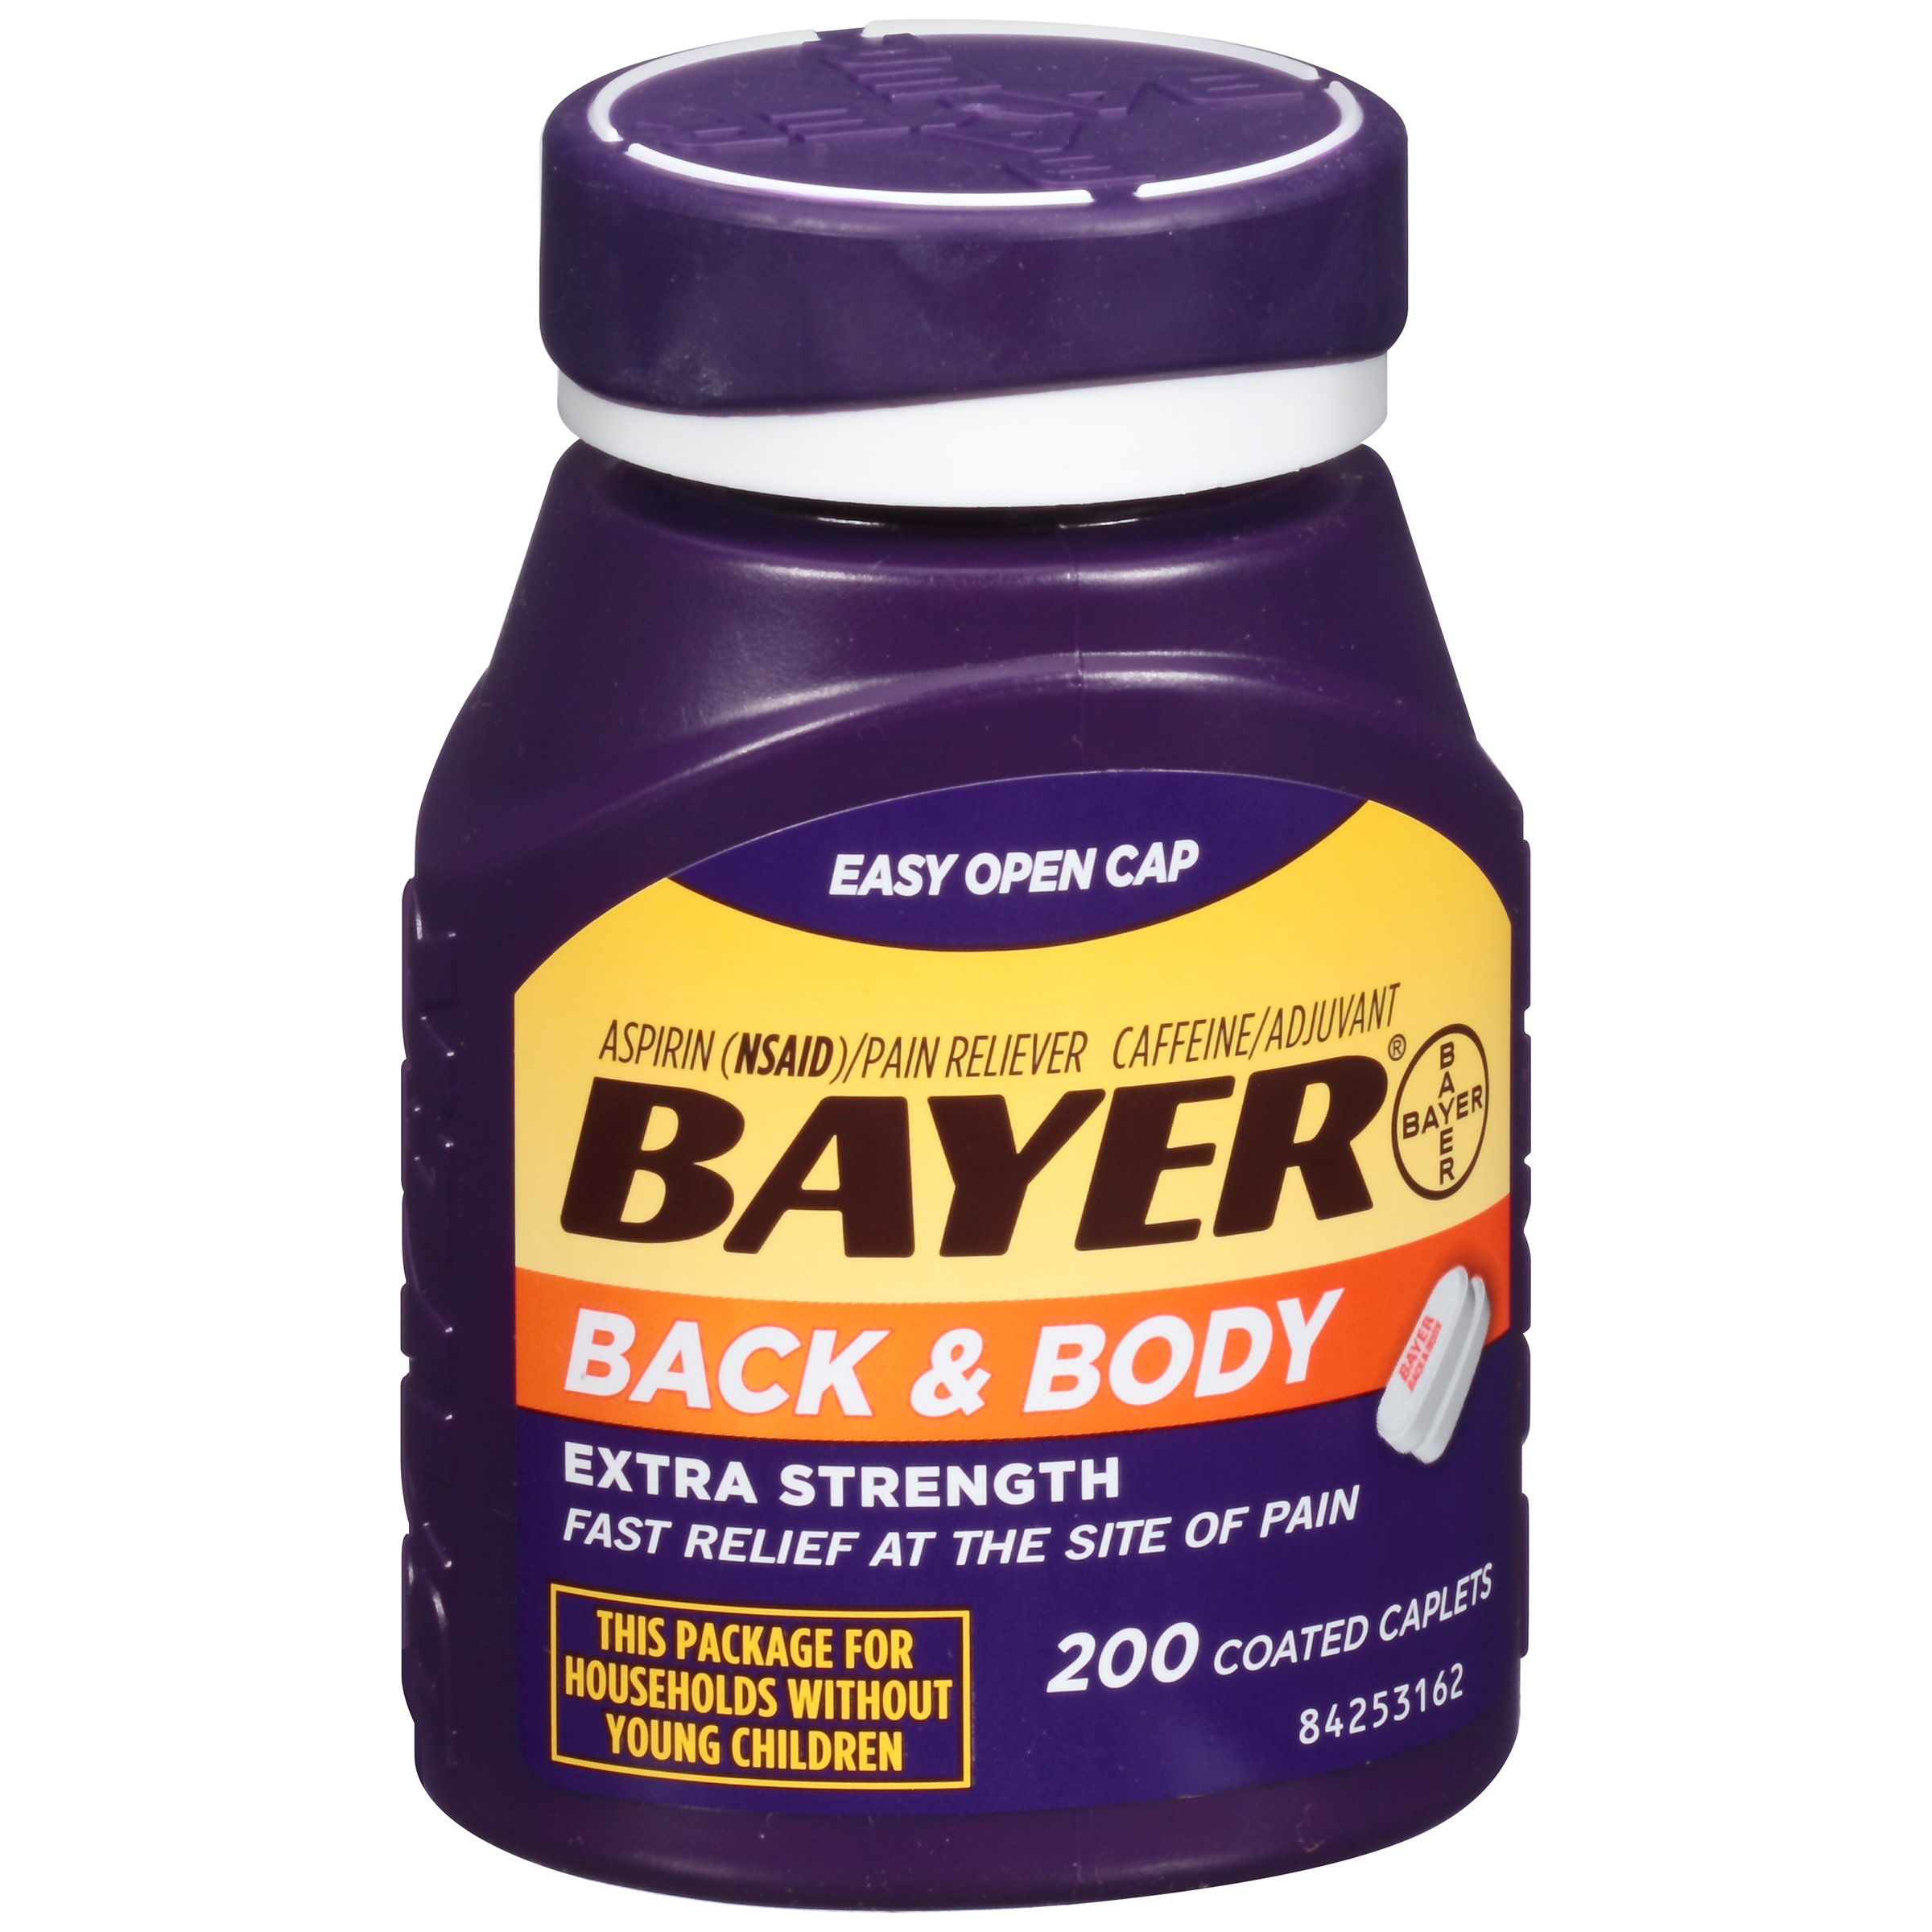 Bayer Back & Body Extra Strength Aspirin, 500mg Coated Tablets, 200ct